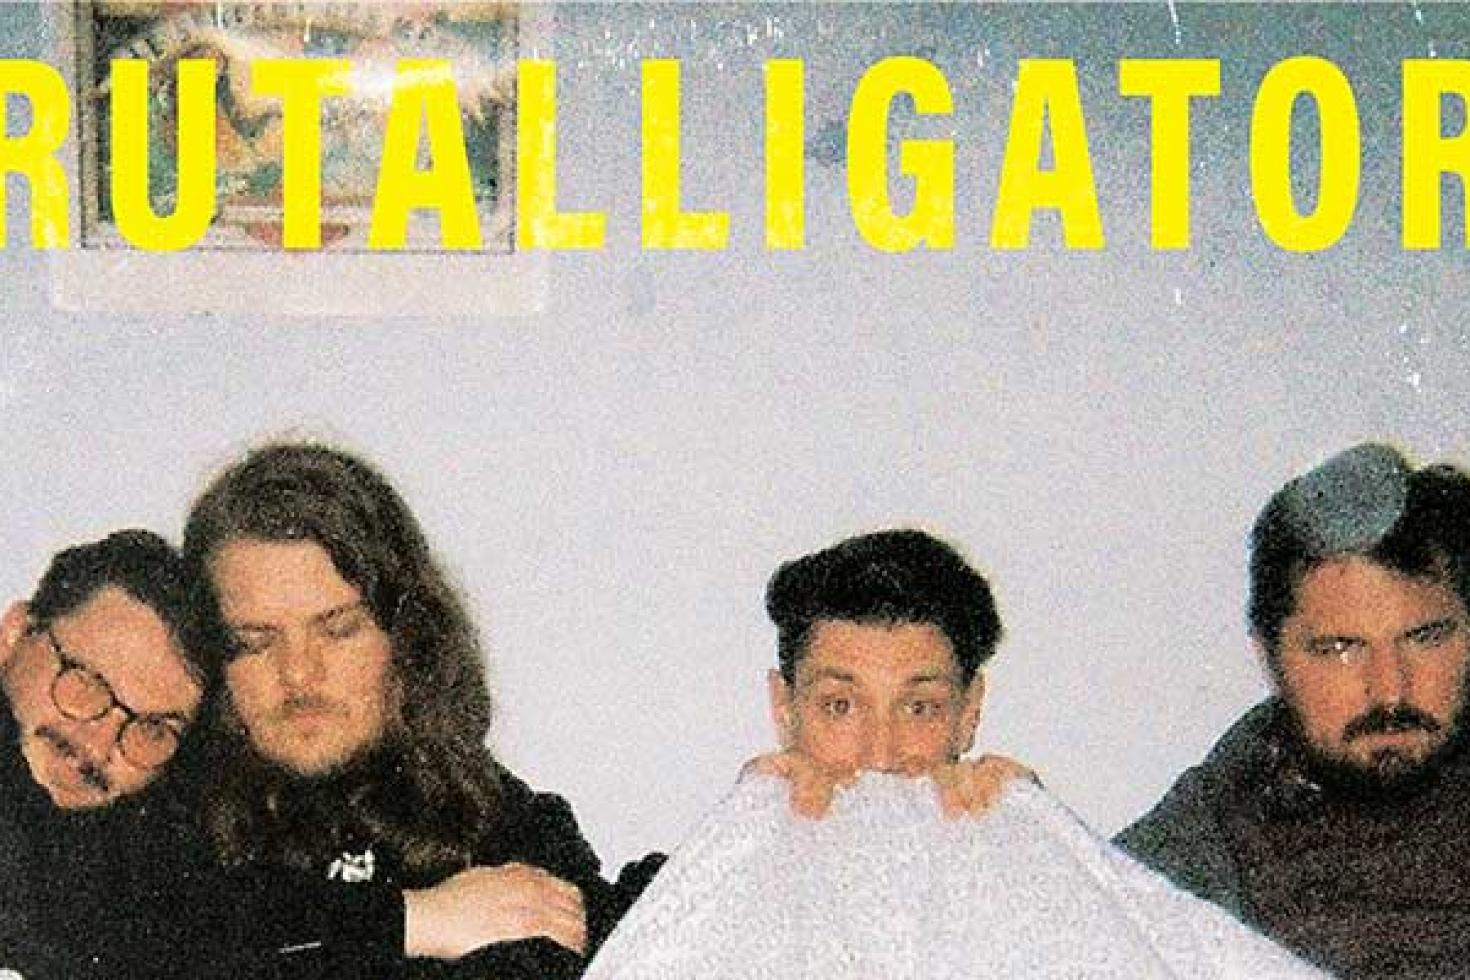 Brutalligators share new video for 'Kill Your Idols'